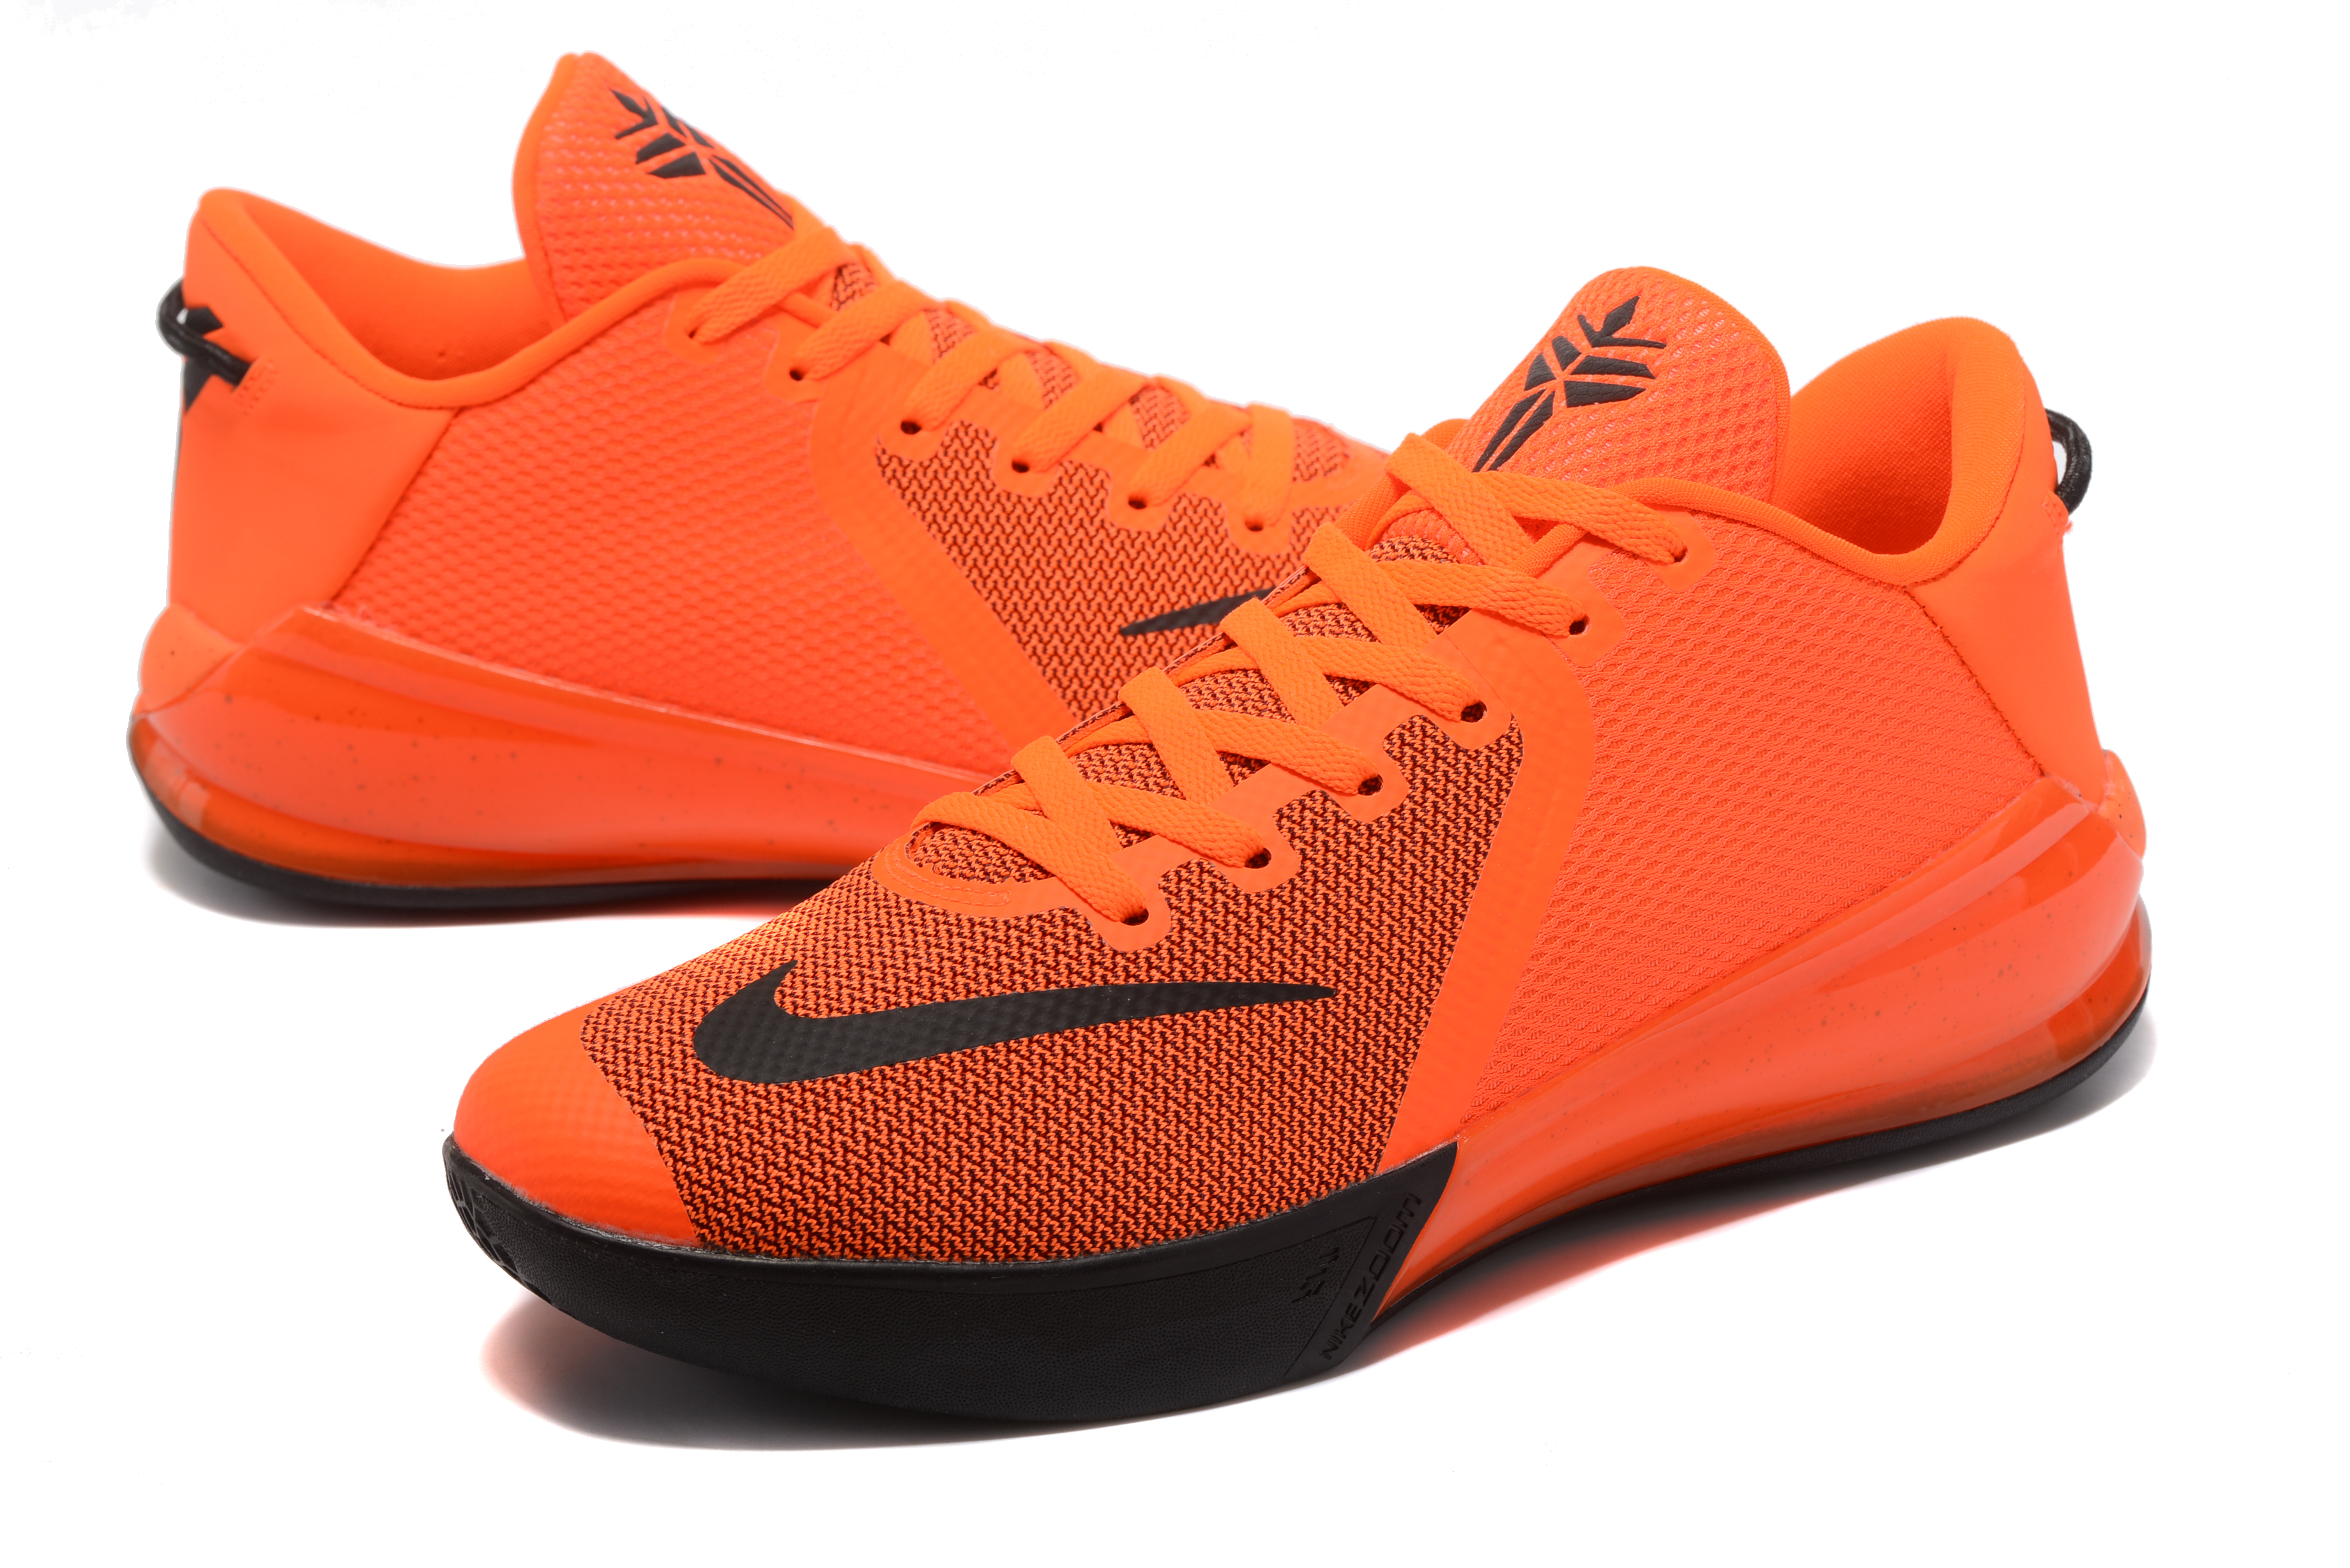 New Kobe Venomenon 6 Orange Black Shoes